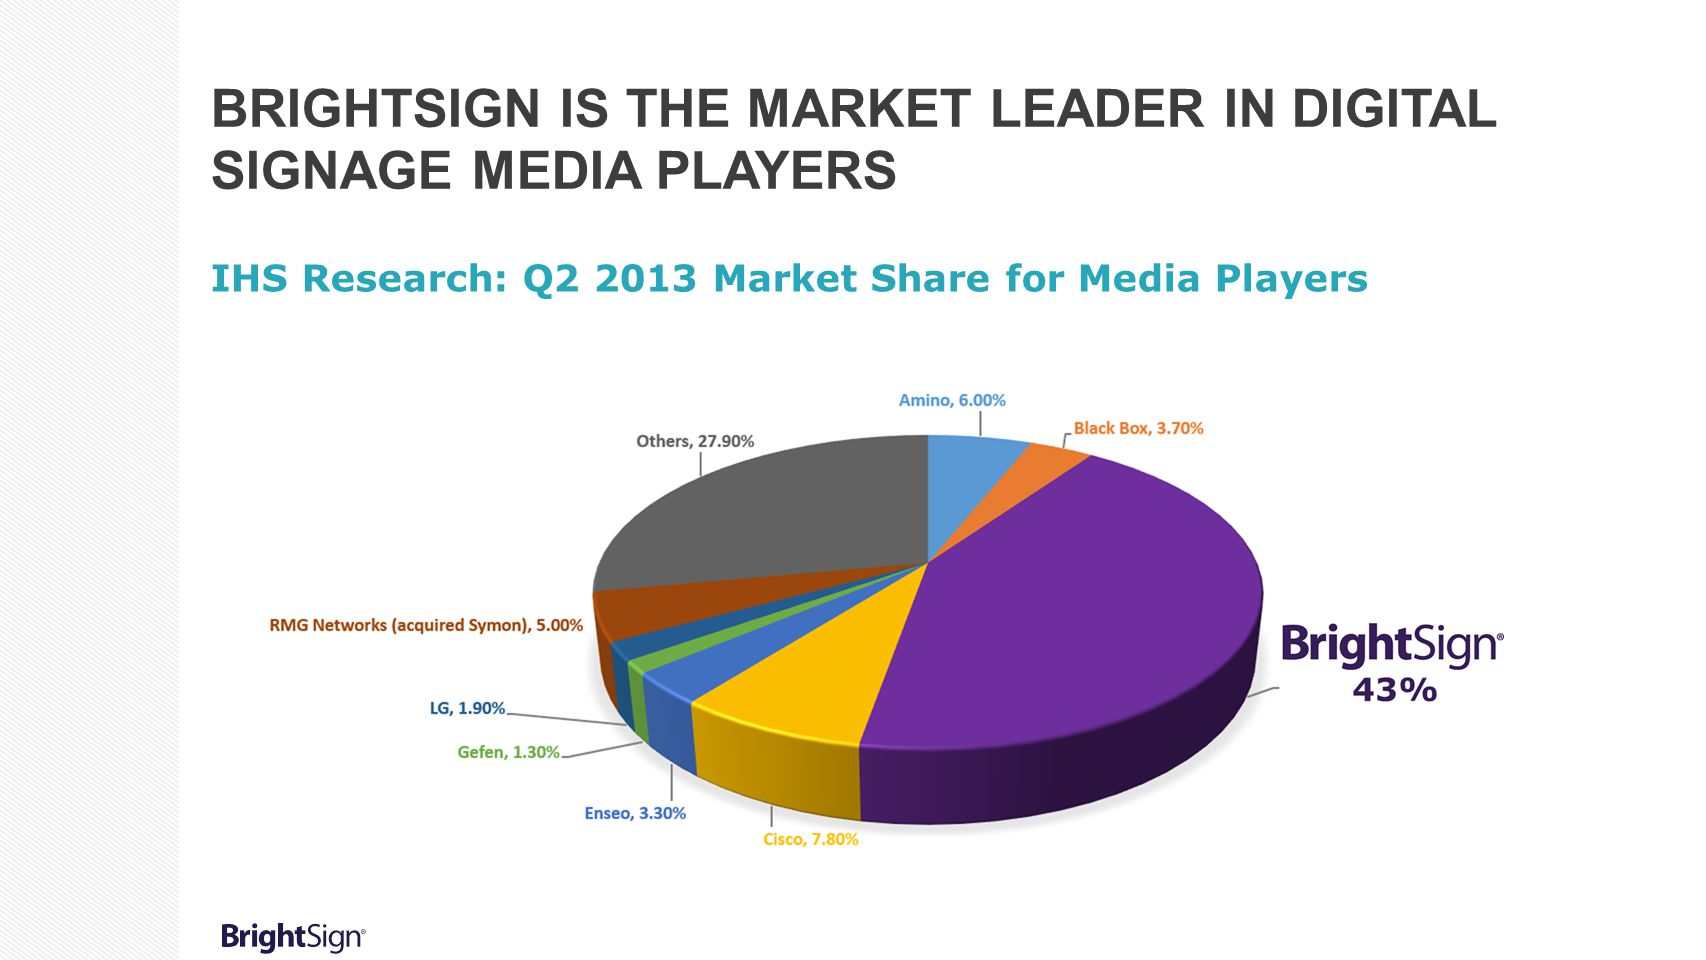 BRIGHTSIGN IS THE MARKET LEADER IN DIGITAL SIGNAGE MEDIA PLAYERS IHS Research: Q2 2013 Market Share for Media Players